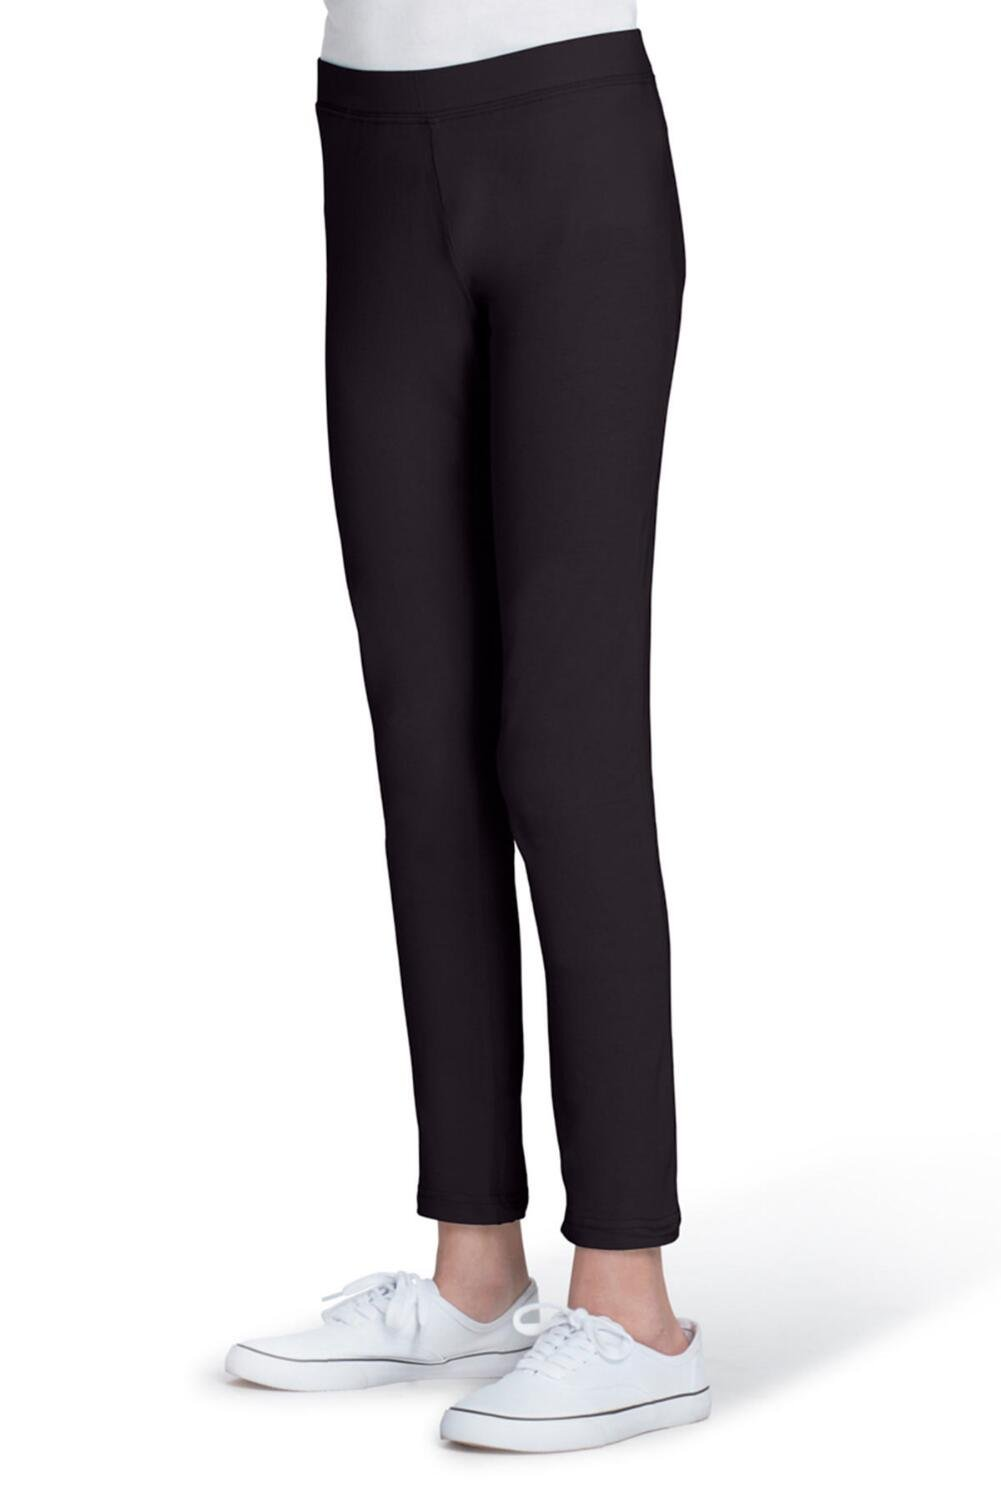 French Toast Girls Solid Leggings,black,10/12